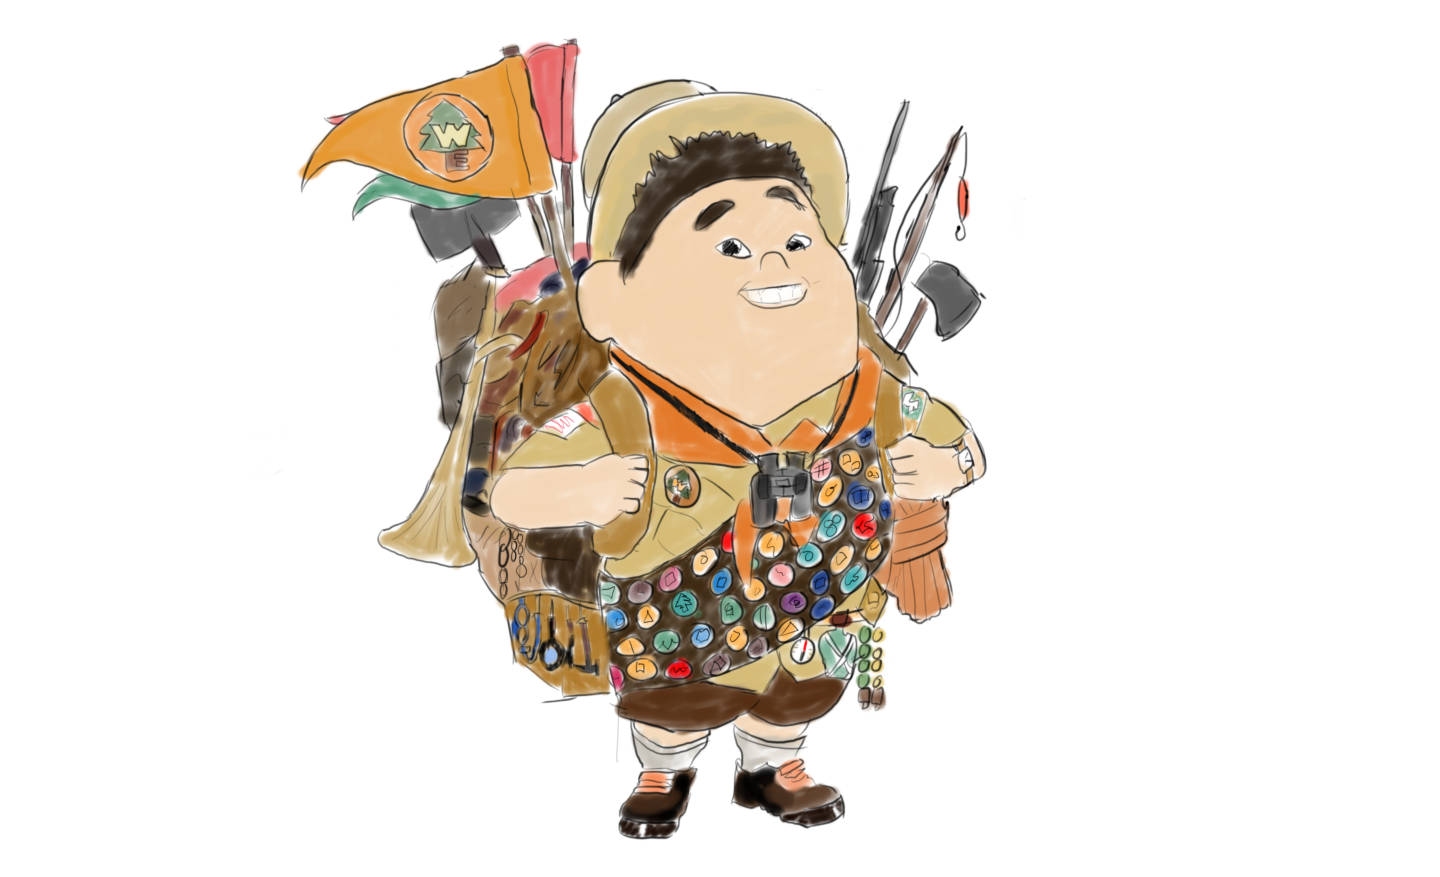 lvl99 RUSSEL FROM UP